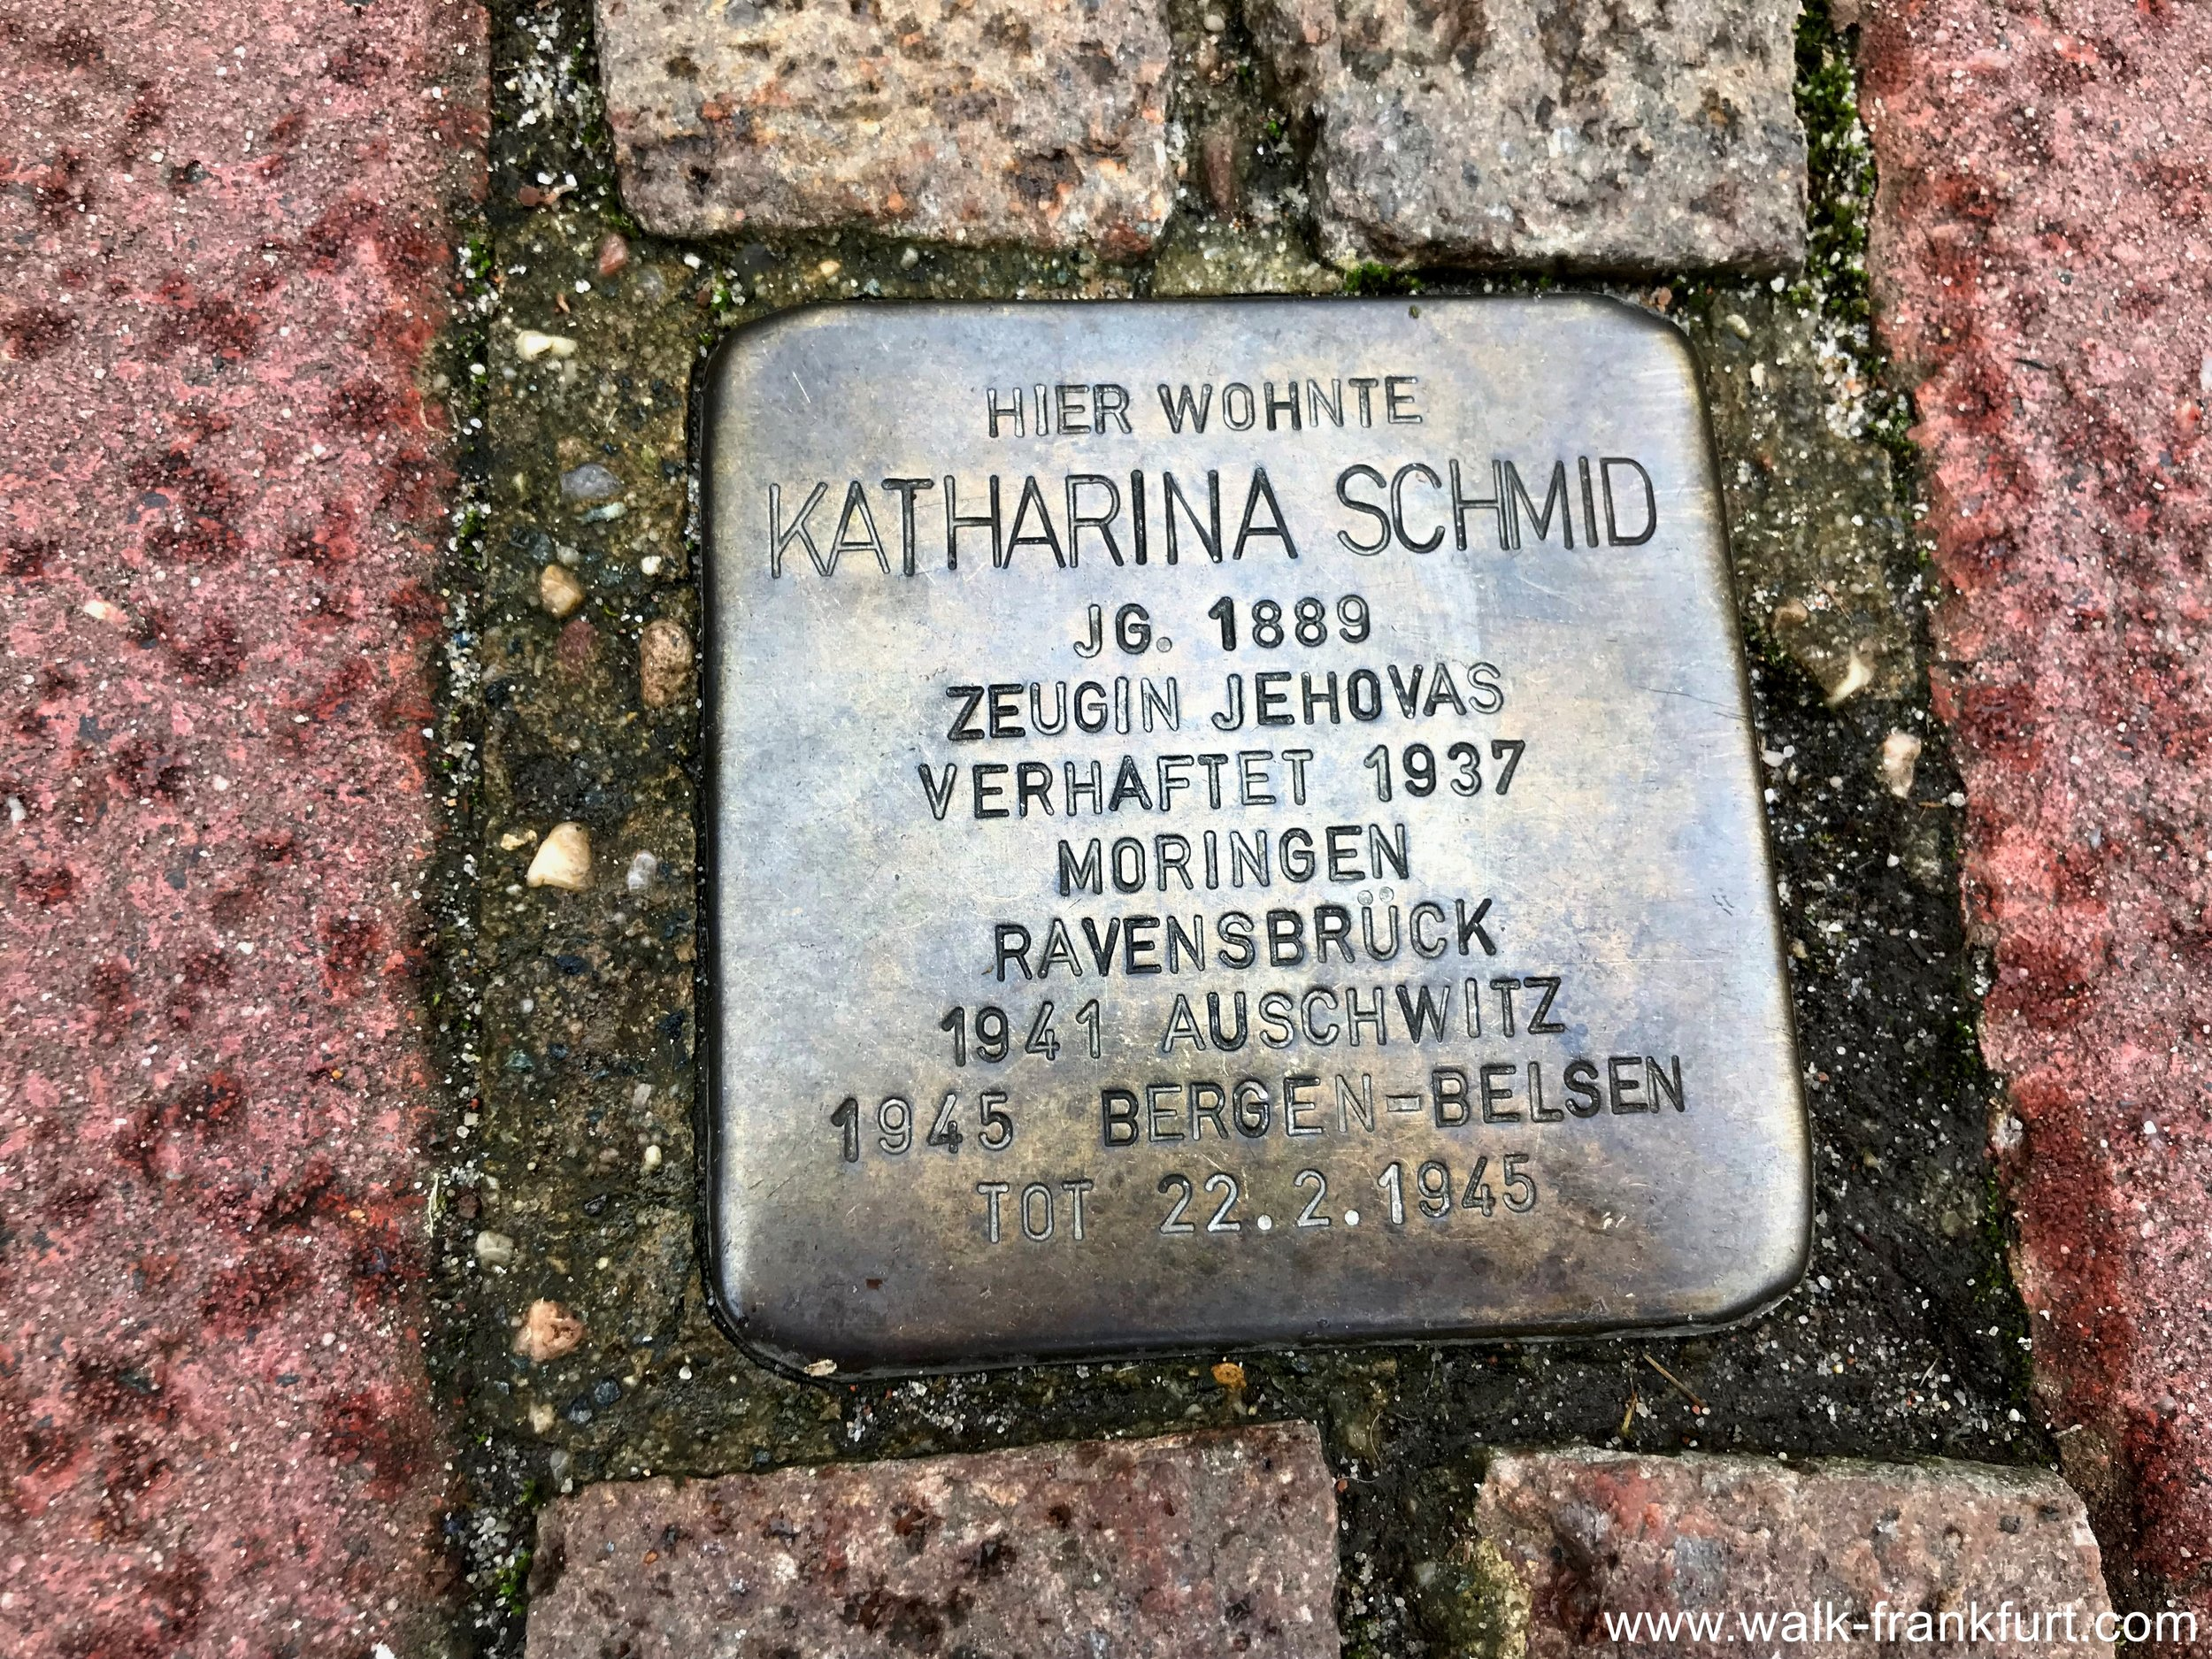 Katharina Schmid's stumbling Stone (Stolperstein) murdered for being a Jehovah's Witness.